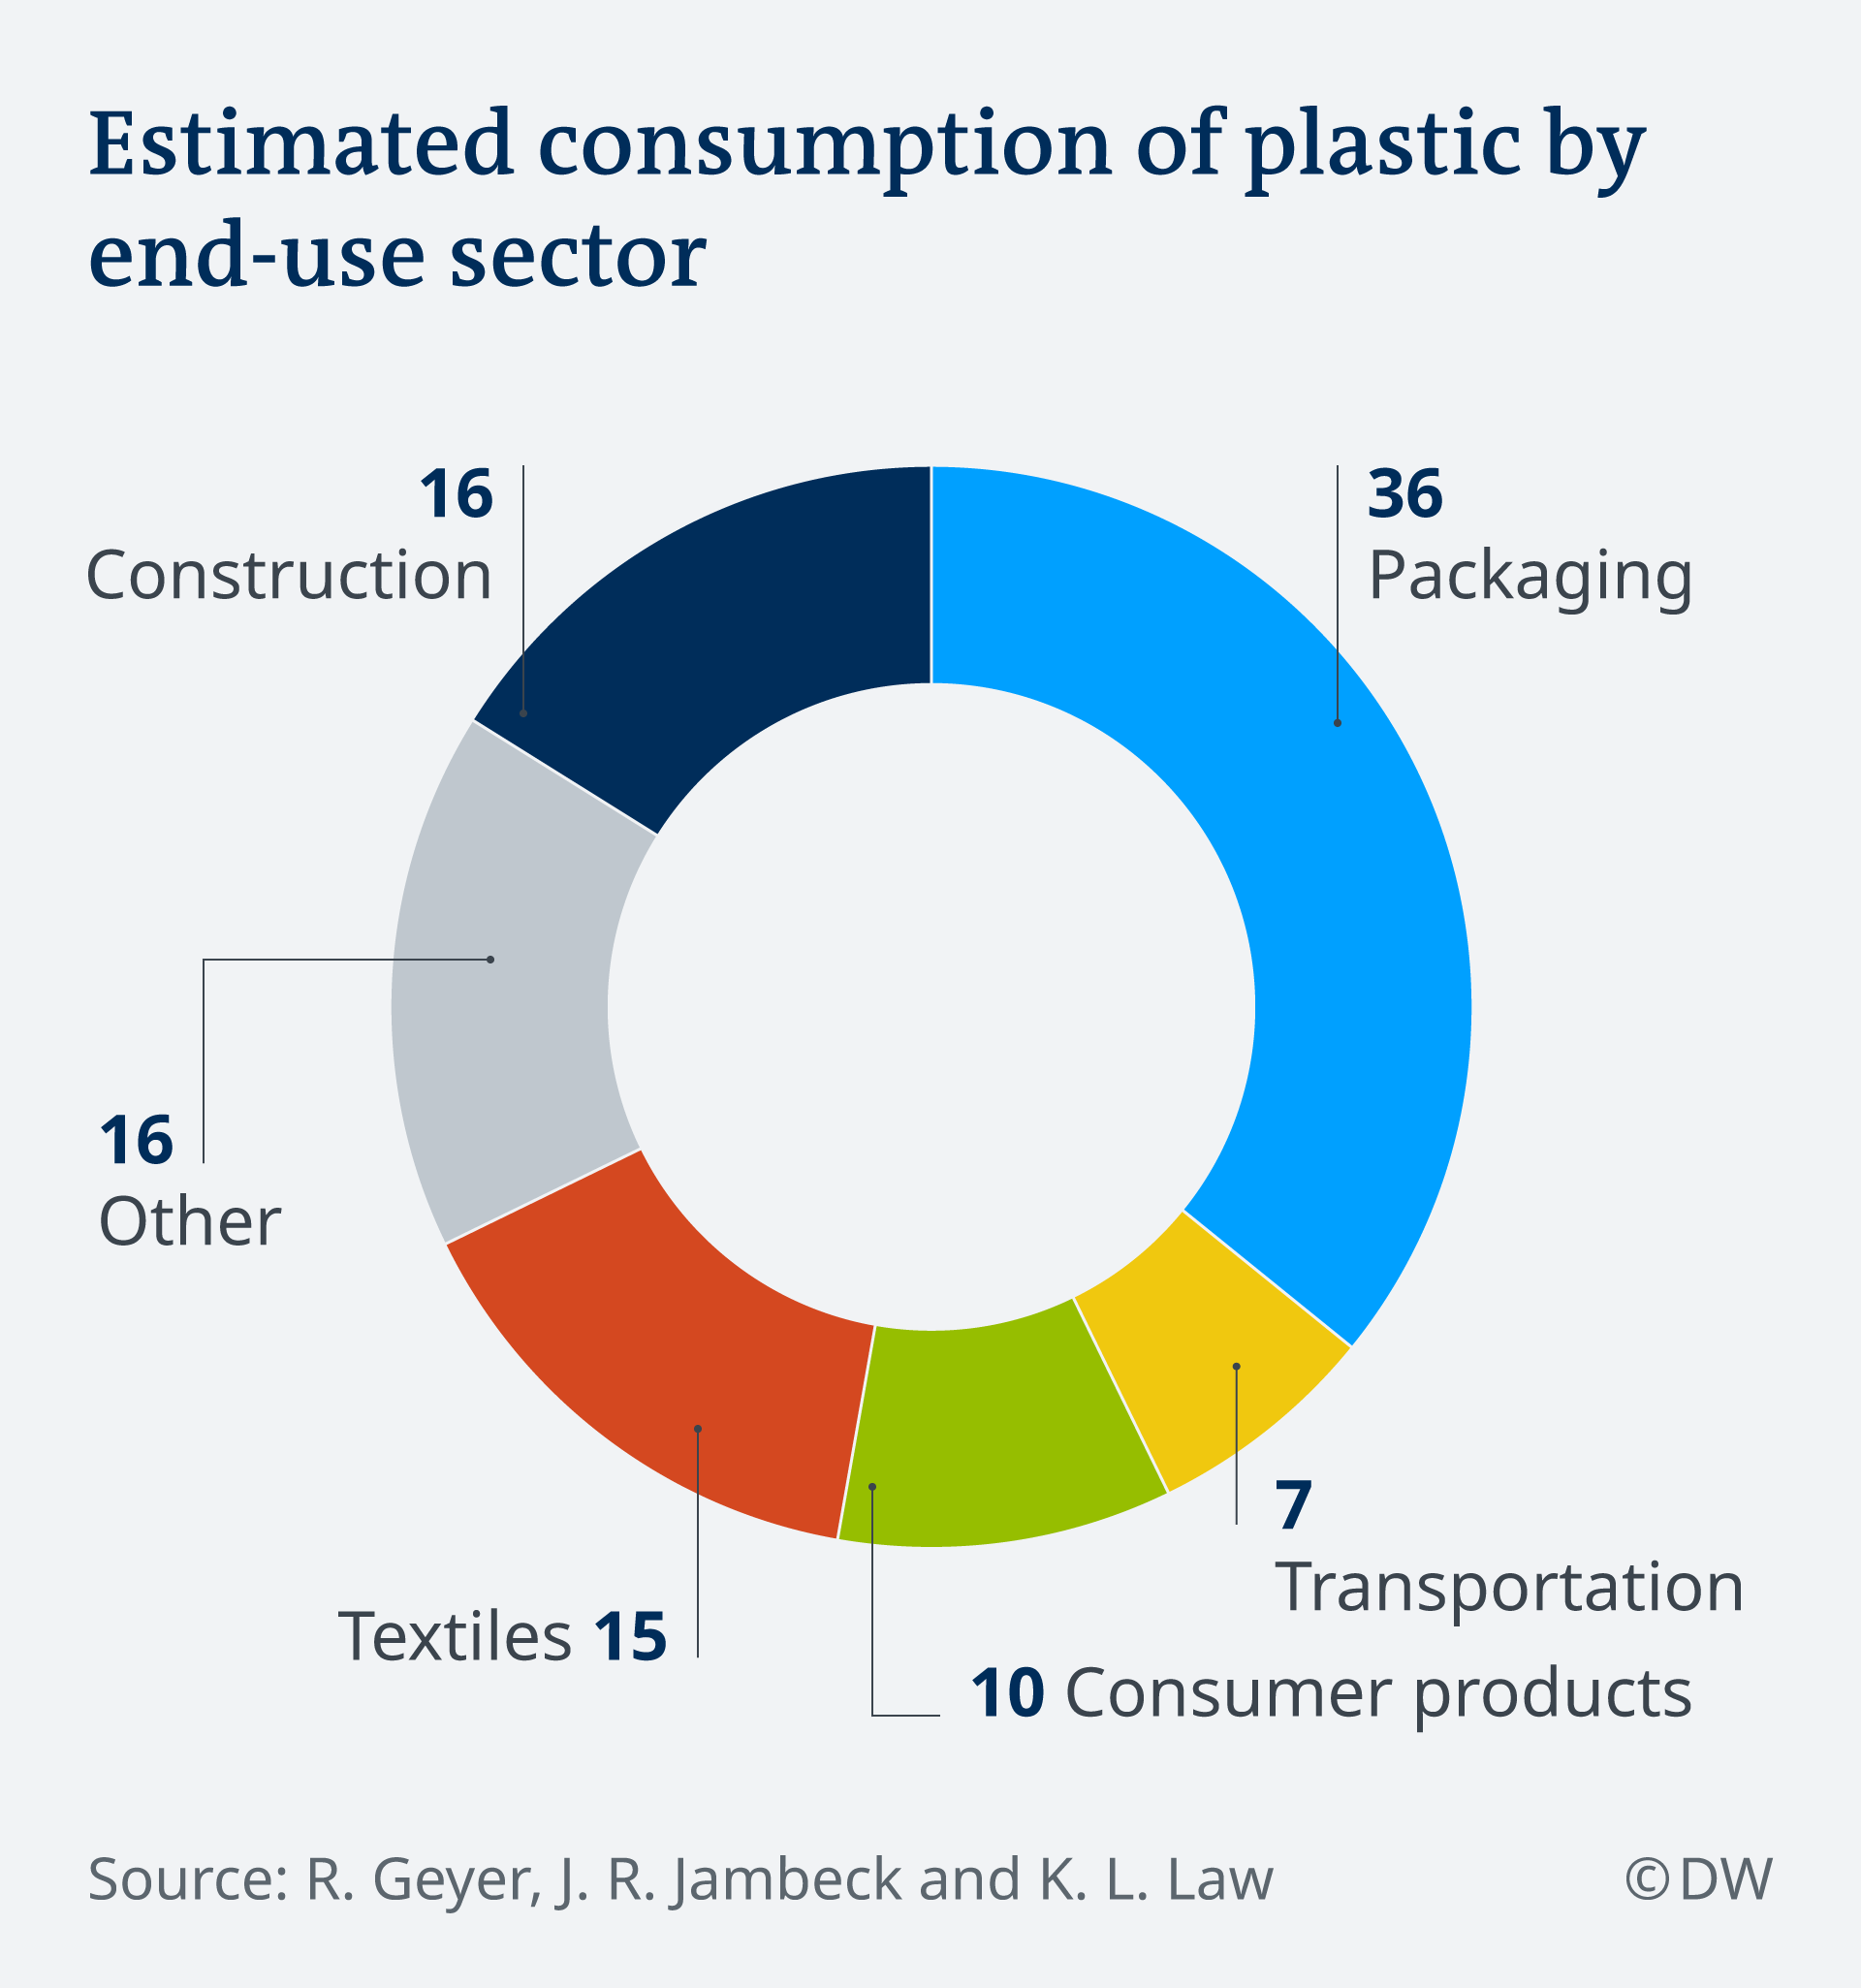 Graphic: Estimated consumption of plastic by end-use sector